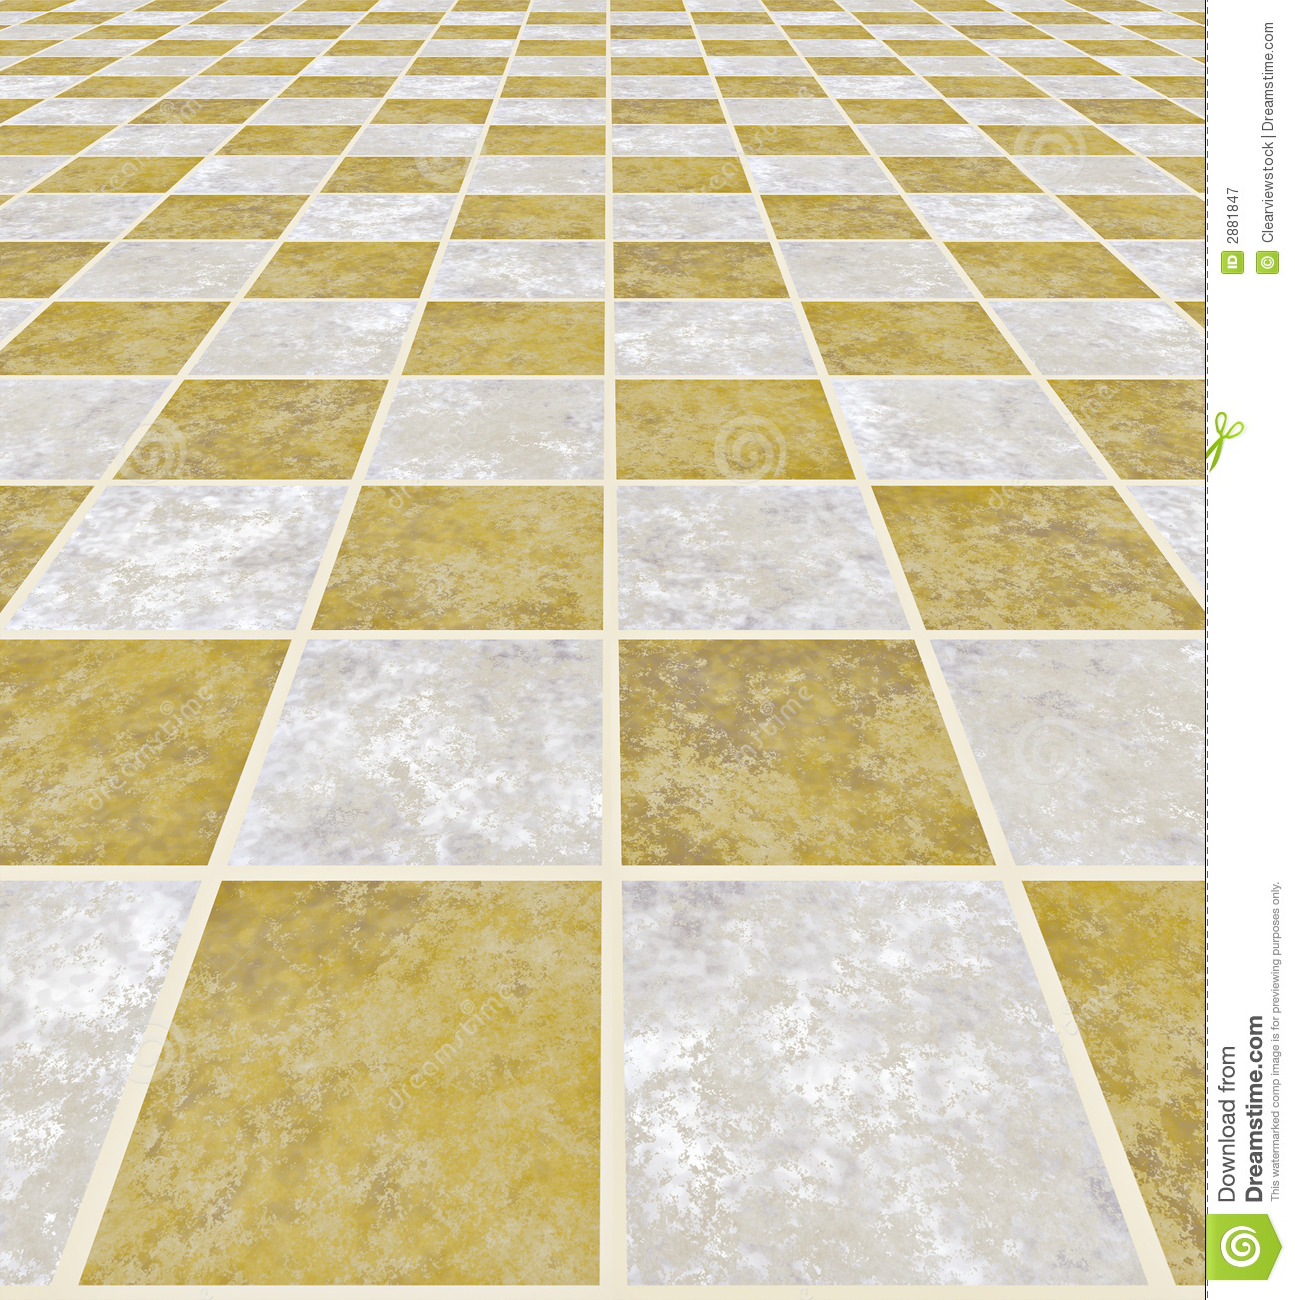 Marble Floor Royalty Free Stock Photography - Image: 2881847: www.dreamstime.com/royalty-free-stock-photography-marble-floor...